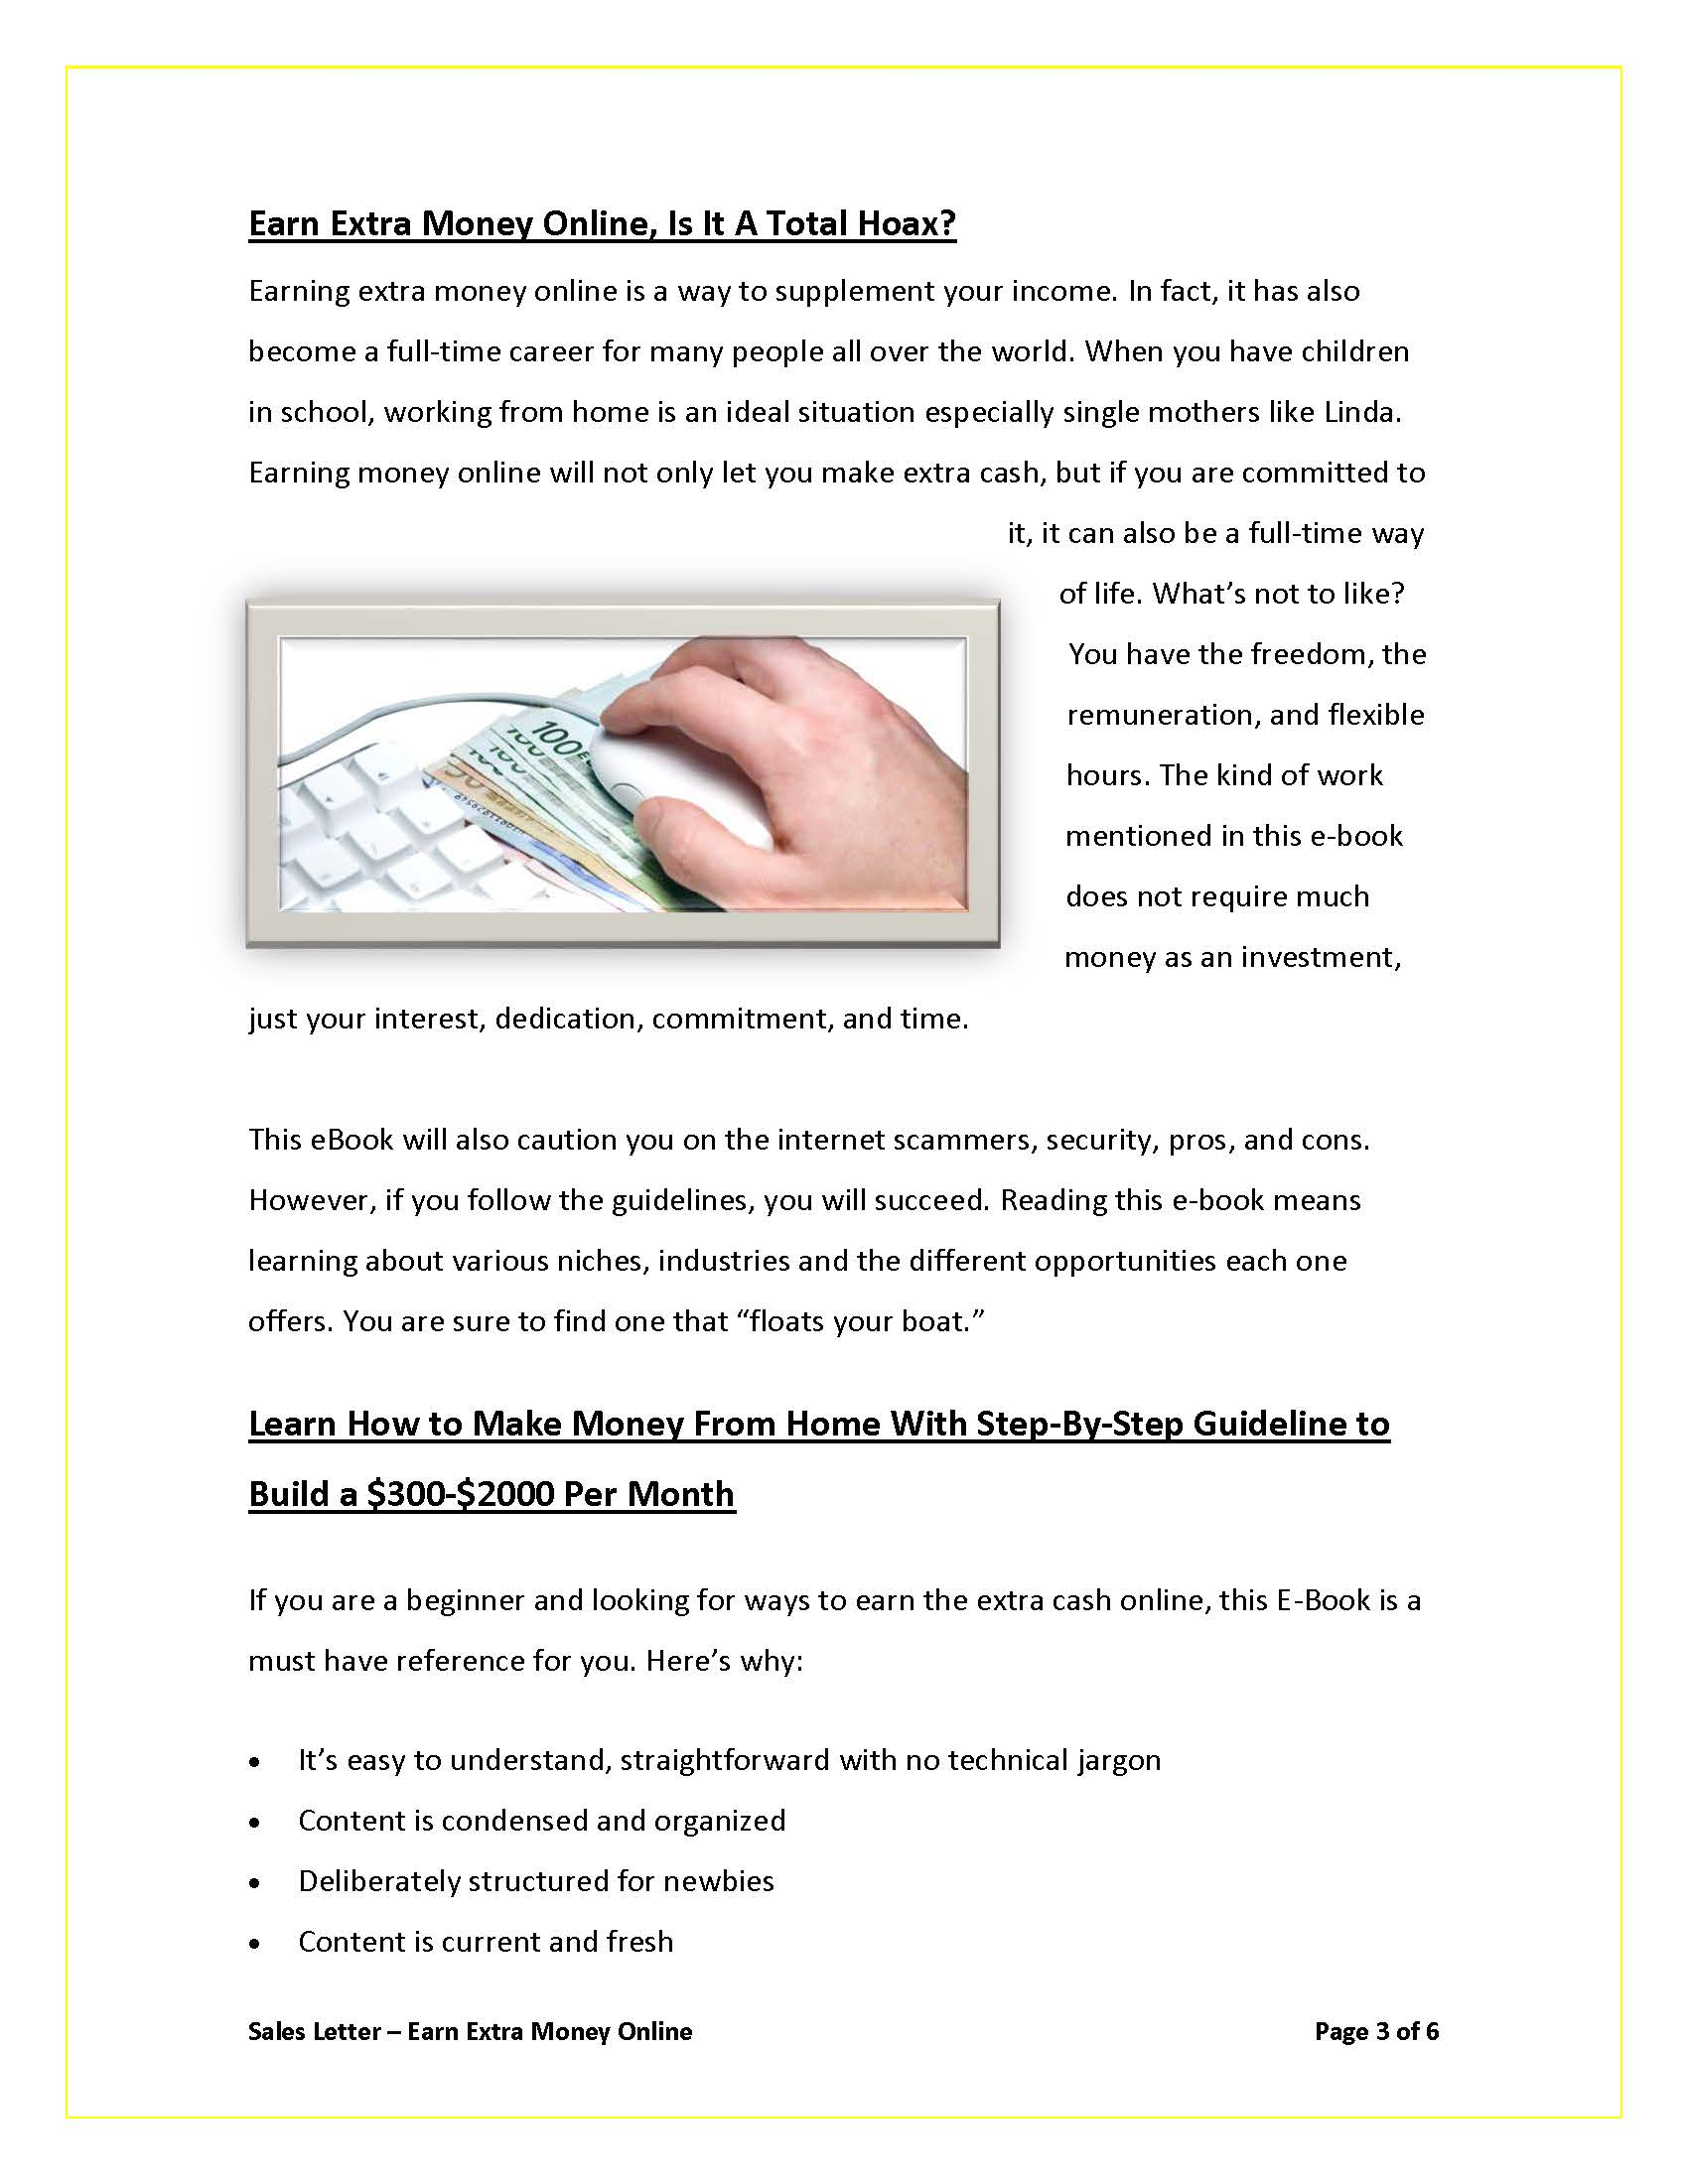 Sales Letter - How To Earn Money Online_Page_3